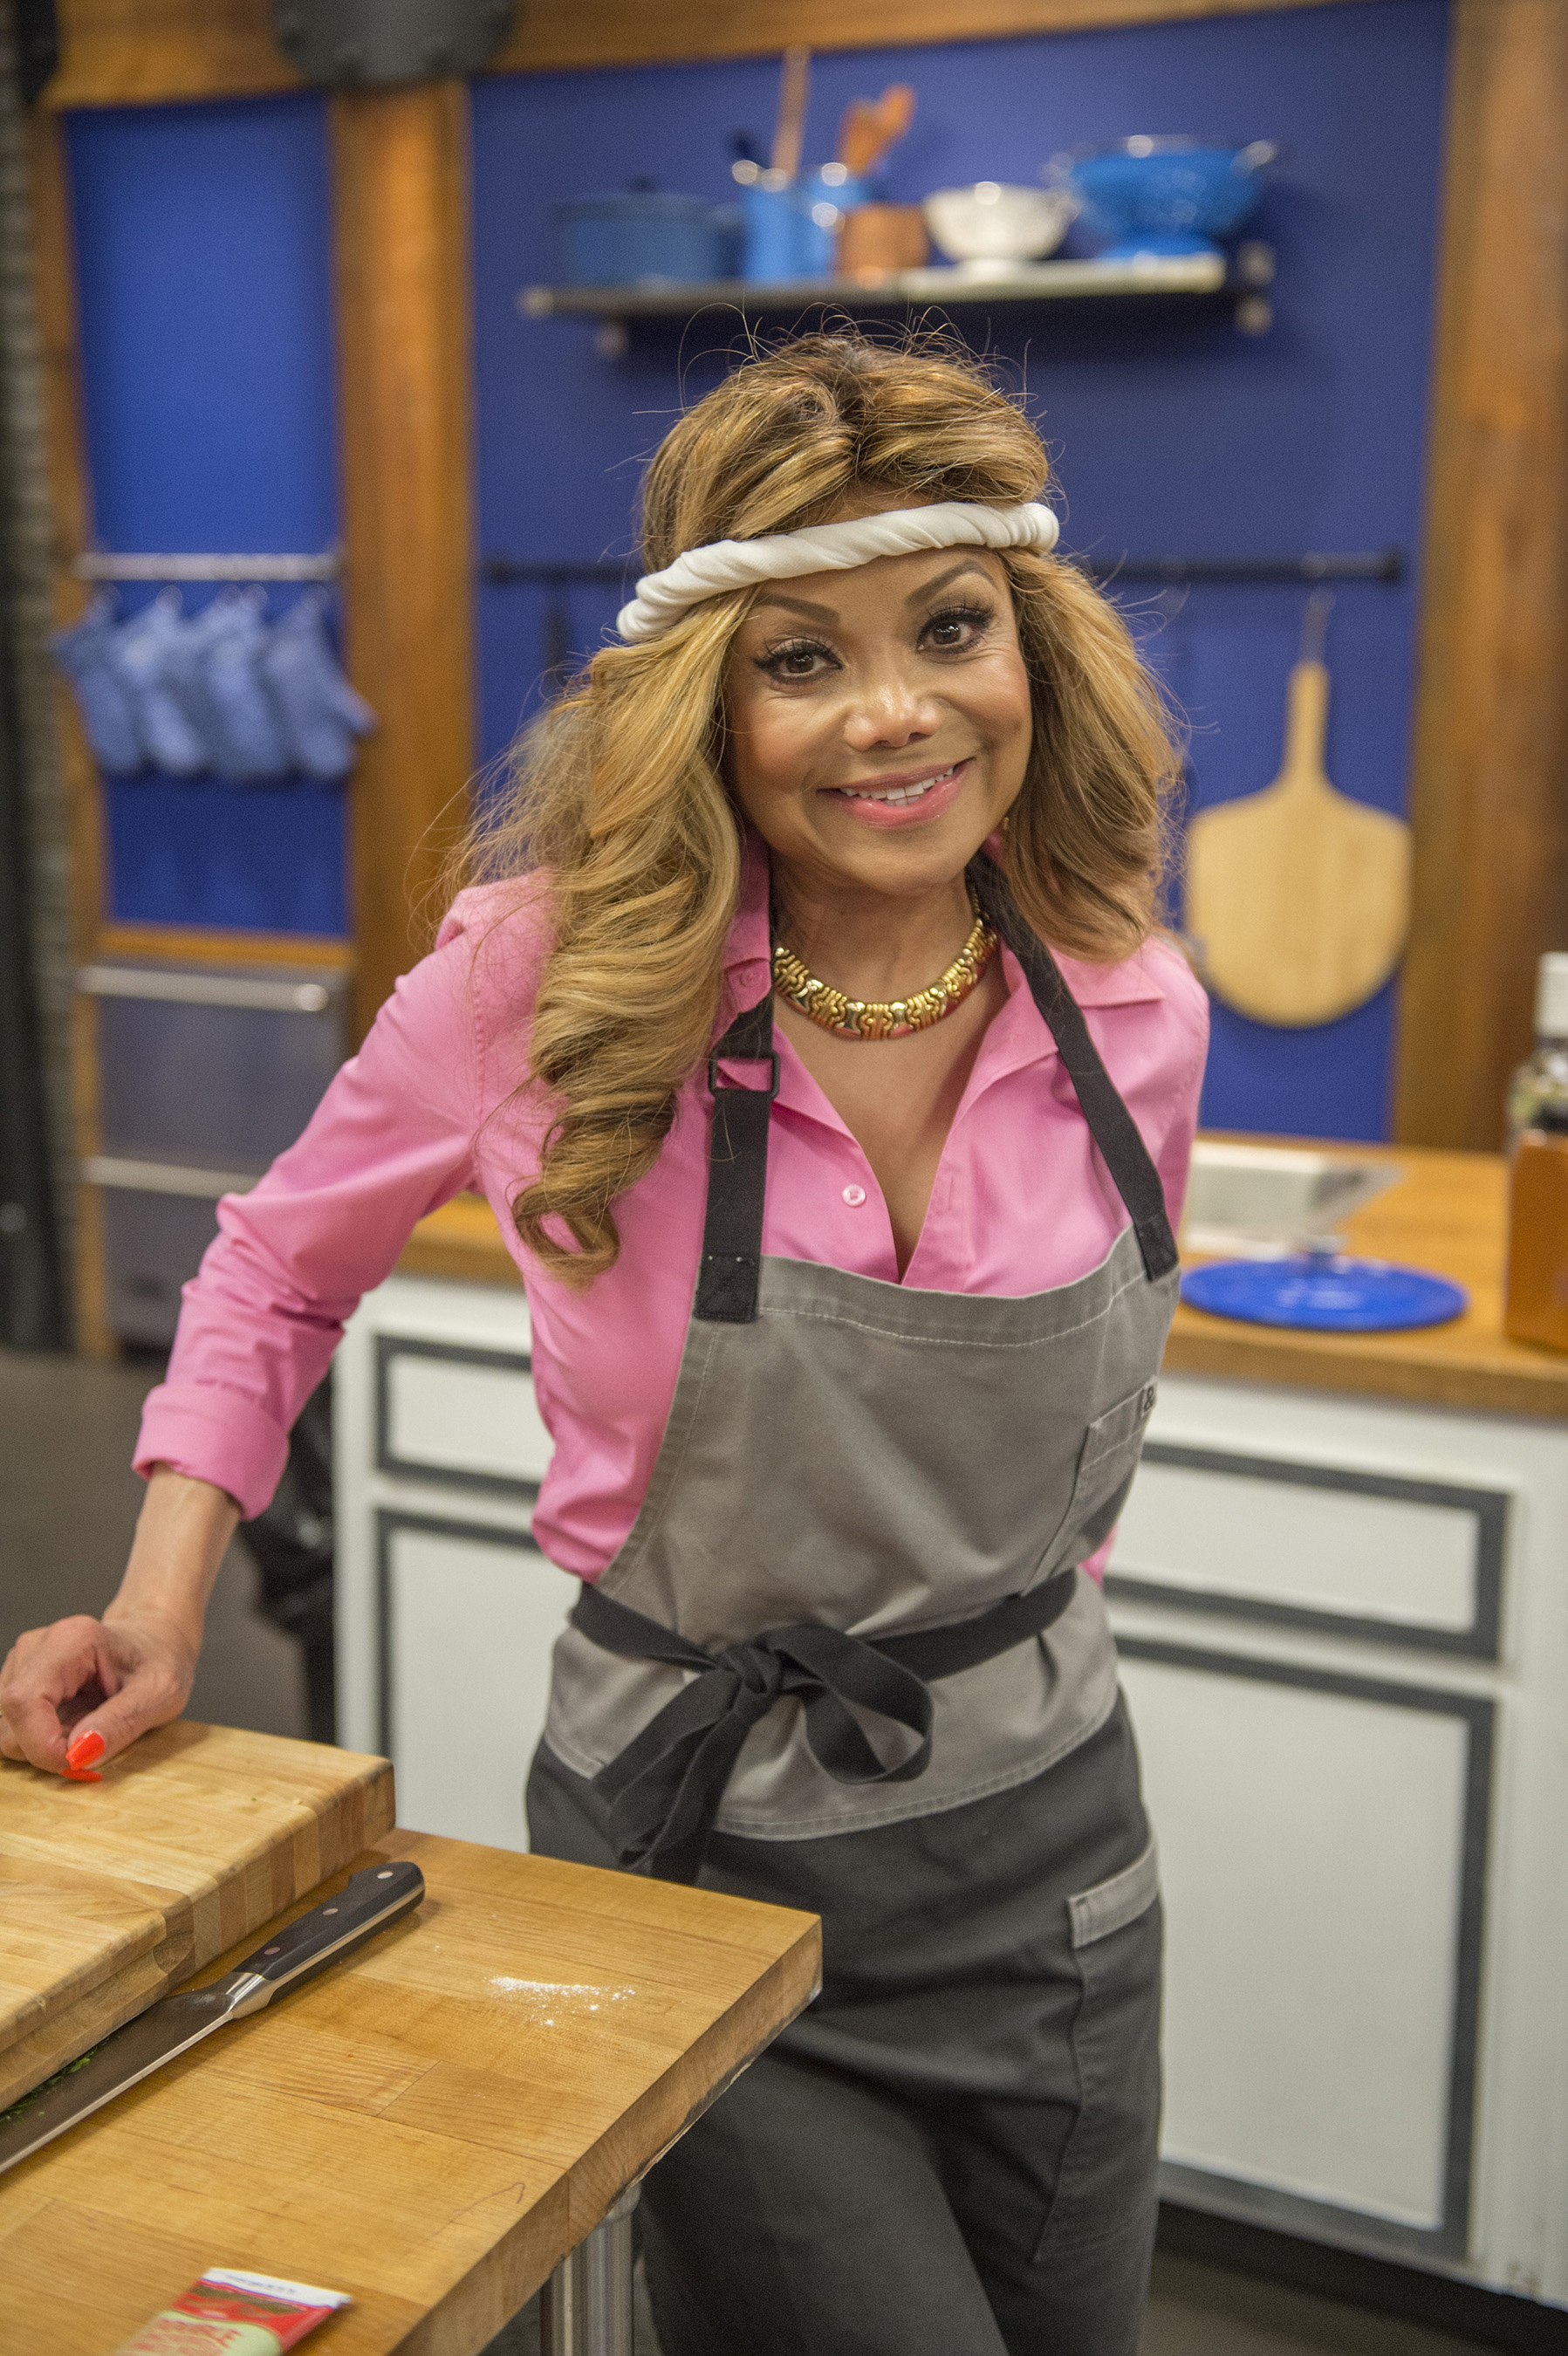 Worst Celebrity Makeup Ever: New Roster Of Cooking-Challenged Celebrities Enter